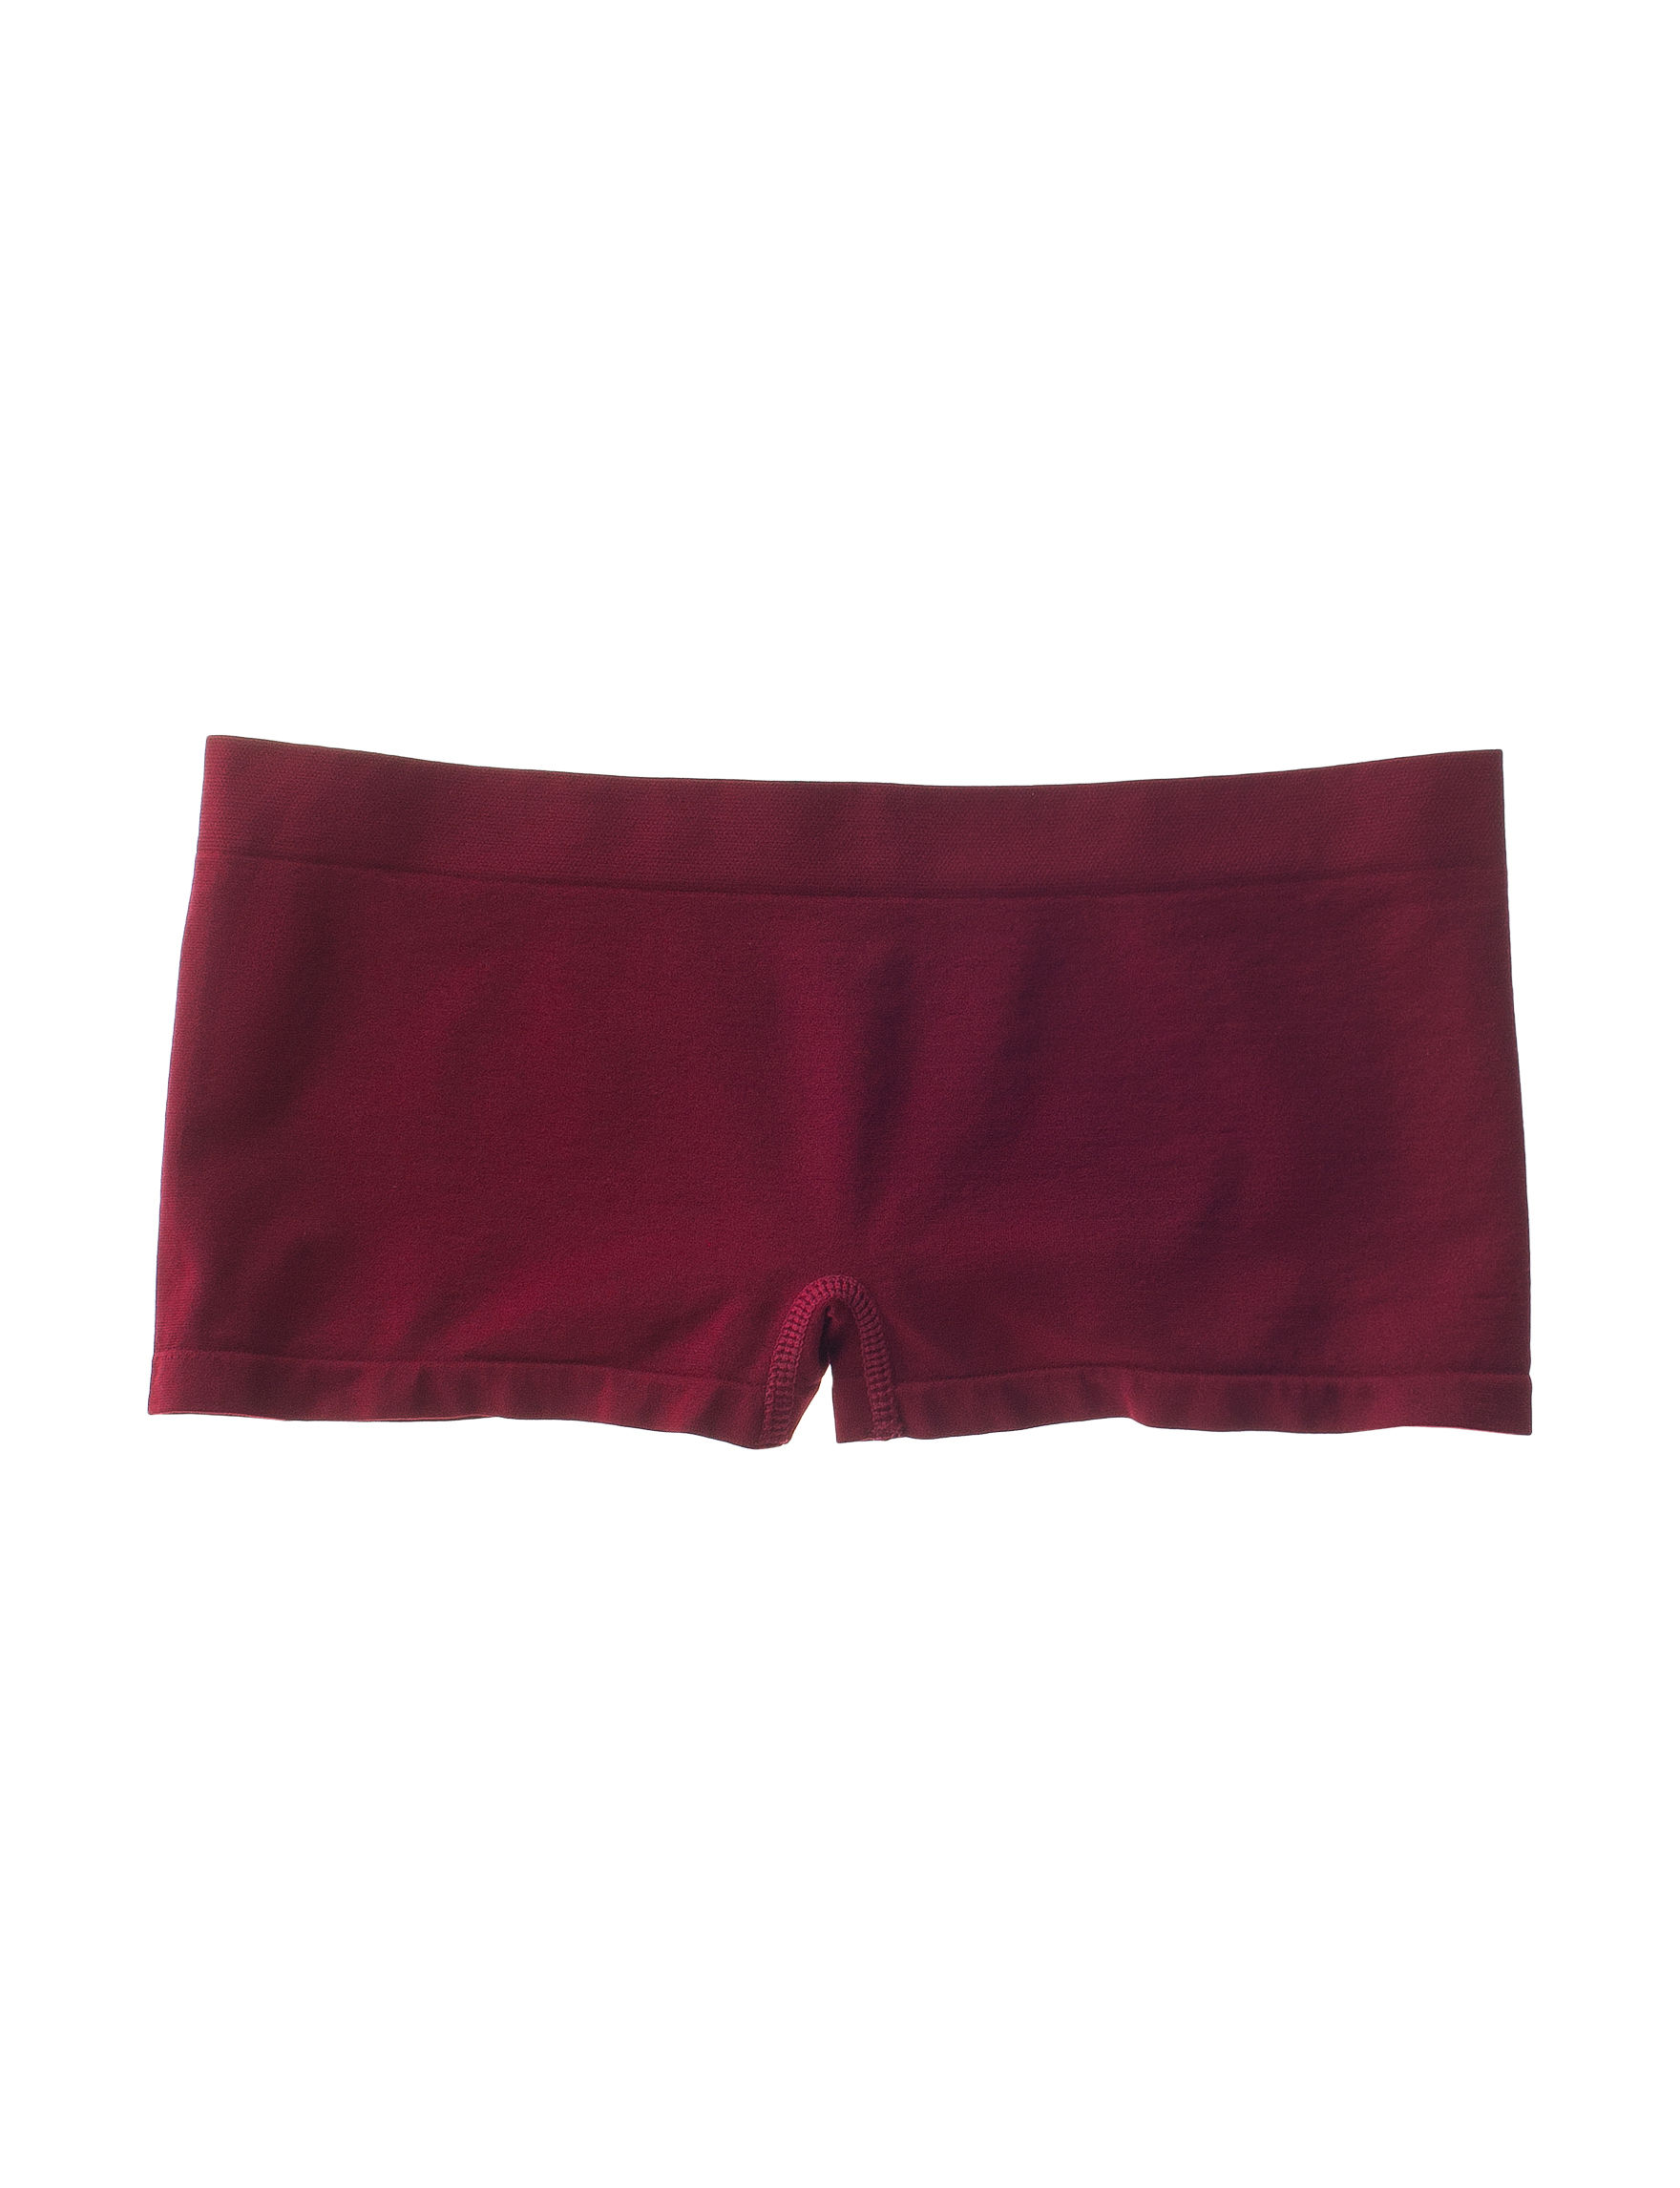 B Intimates Burgundy Panties Boyshort